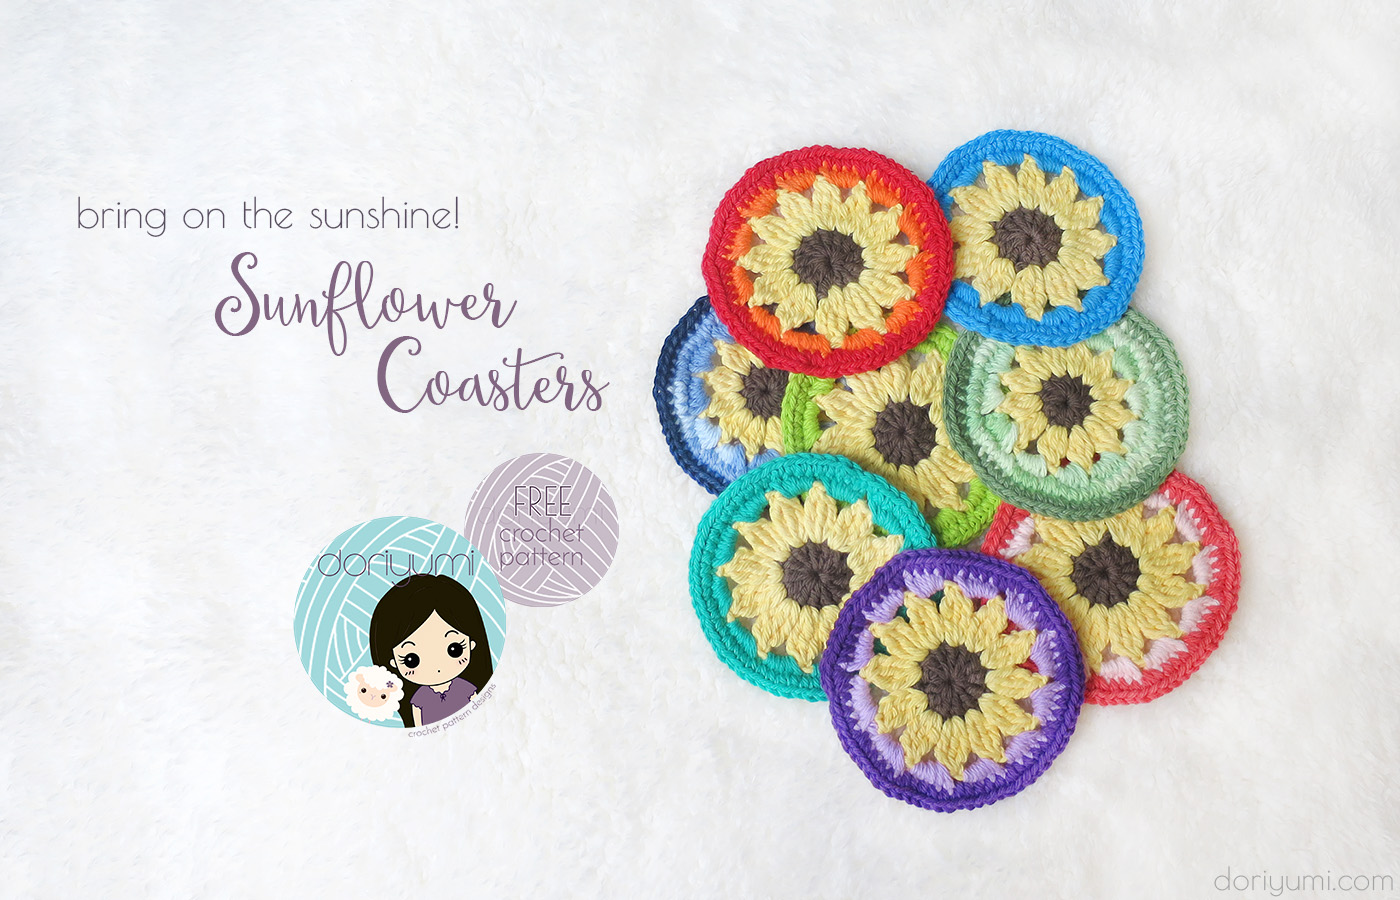 Sunflower Coasters - free crochet pattern by DORIYUMI